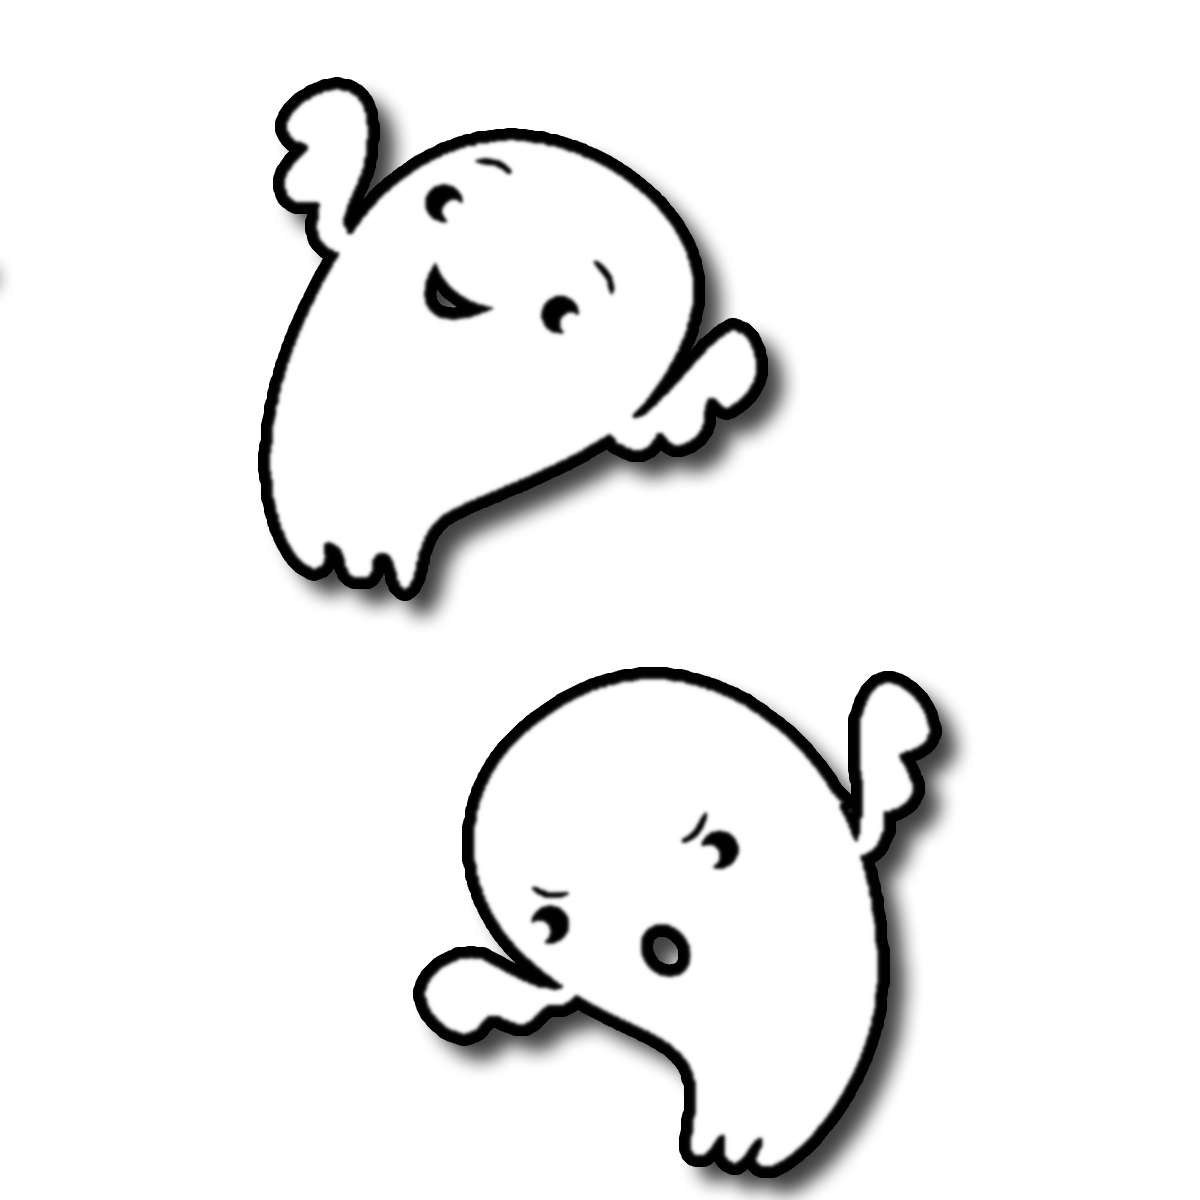 Happy Ghost Png - Happy, Transparent background PNG HD thumbnail